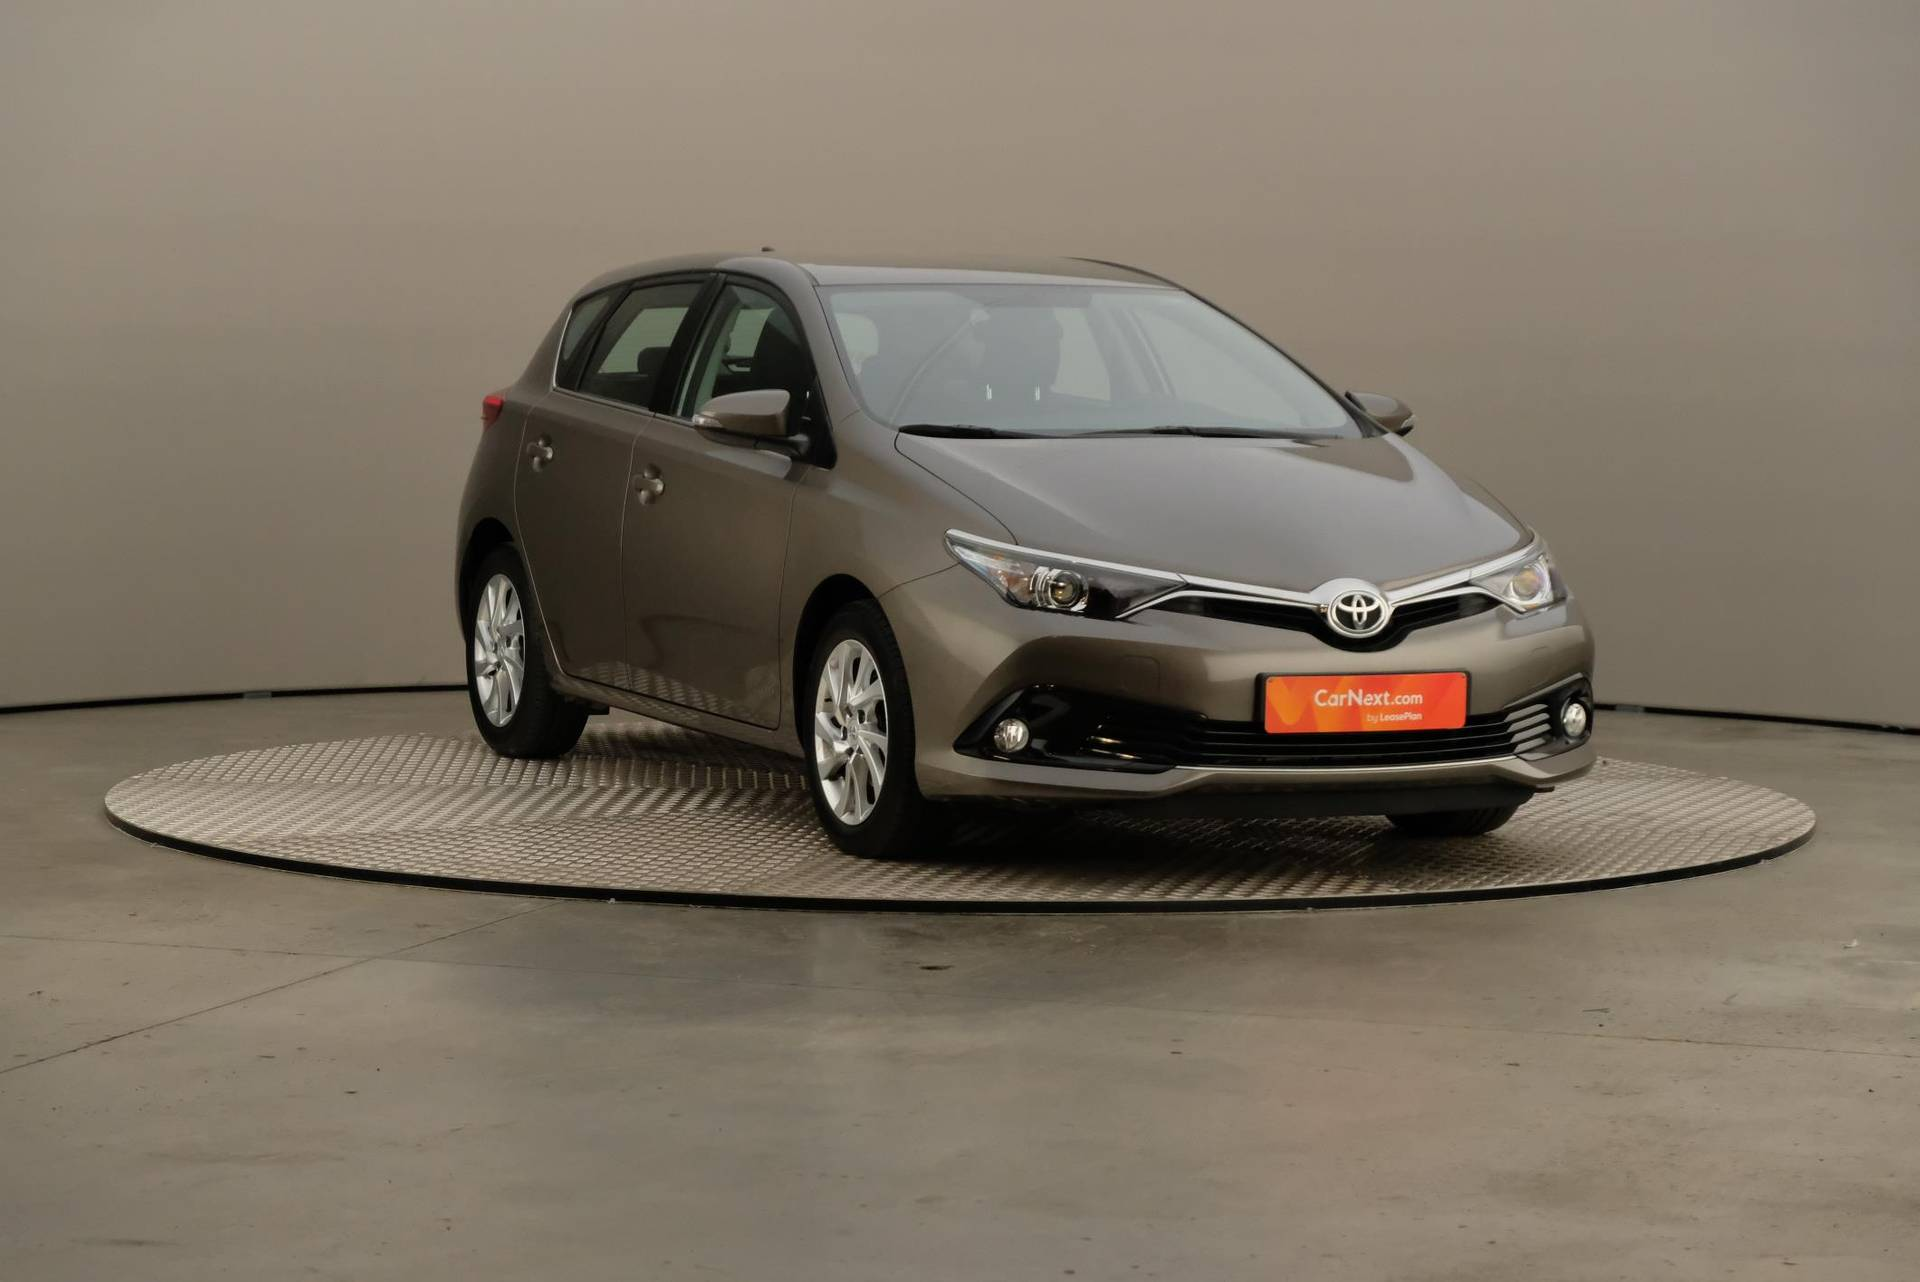 Toyota Auris 1.4 D-4D DYNAMIC CAMERA GPS LED DAB EURO6, 360-image29